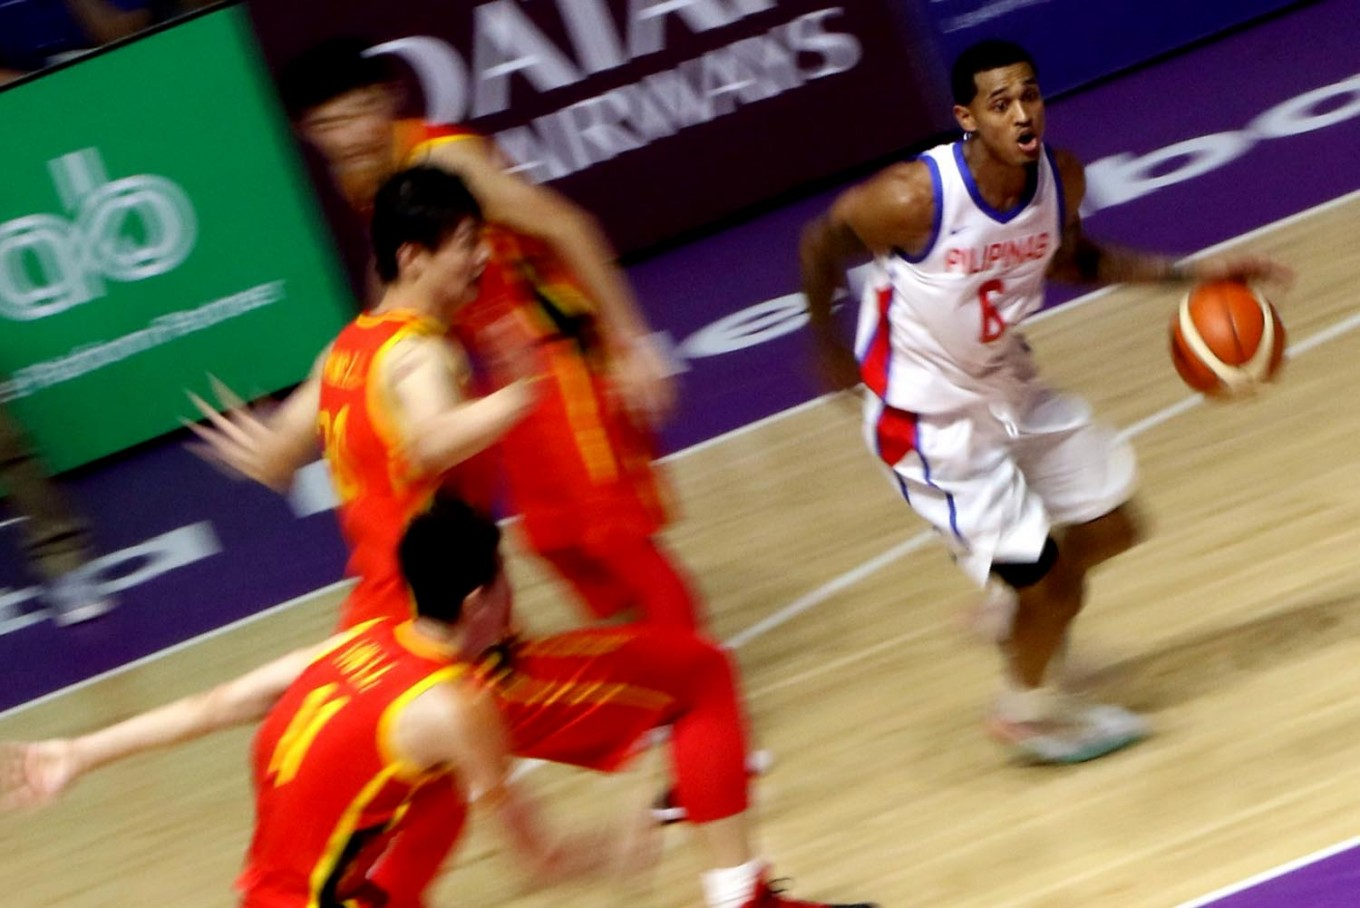 Drive through: Philippines' Jorda Clarkson (right) controls the ball during a basketball game against China. JP/ Seto Wardhana